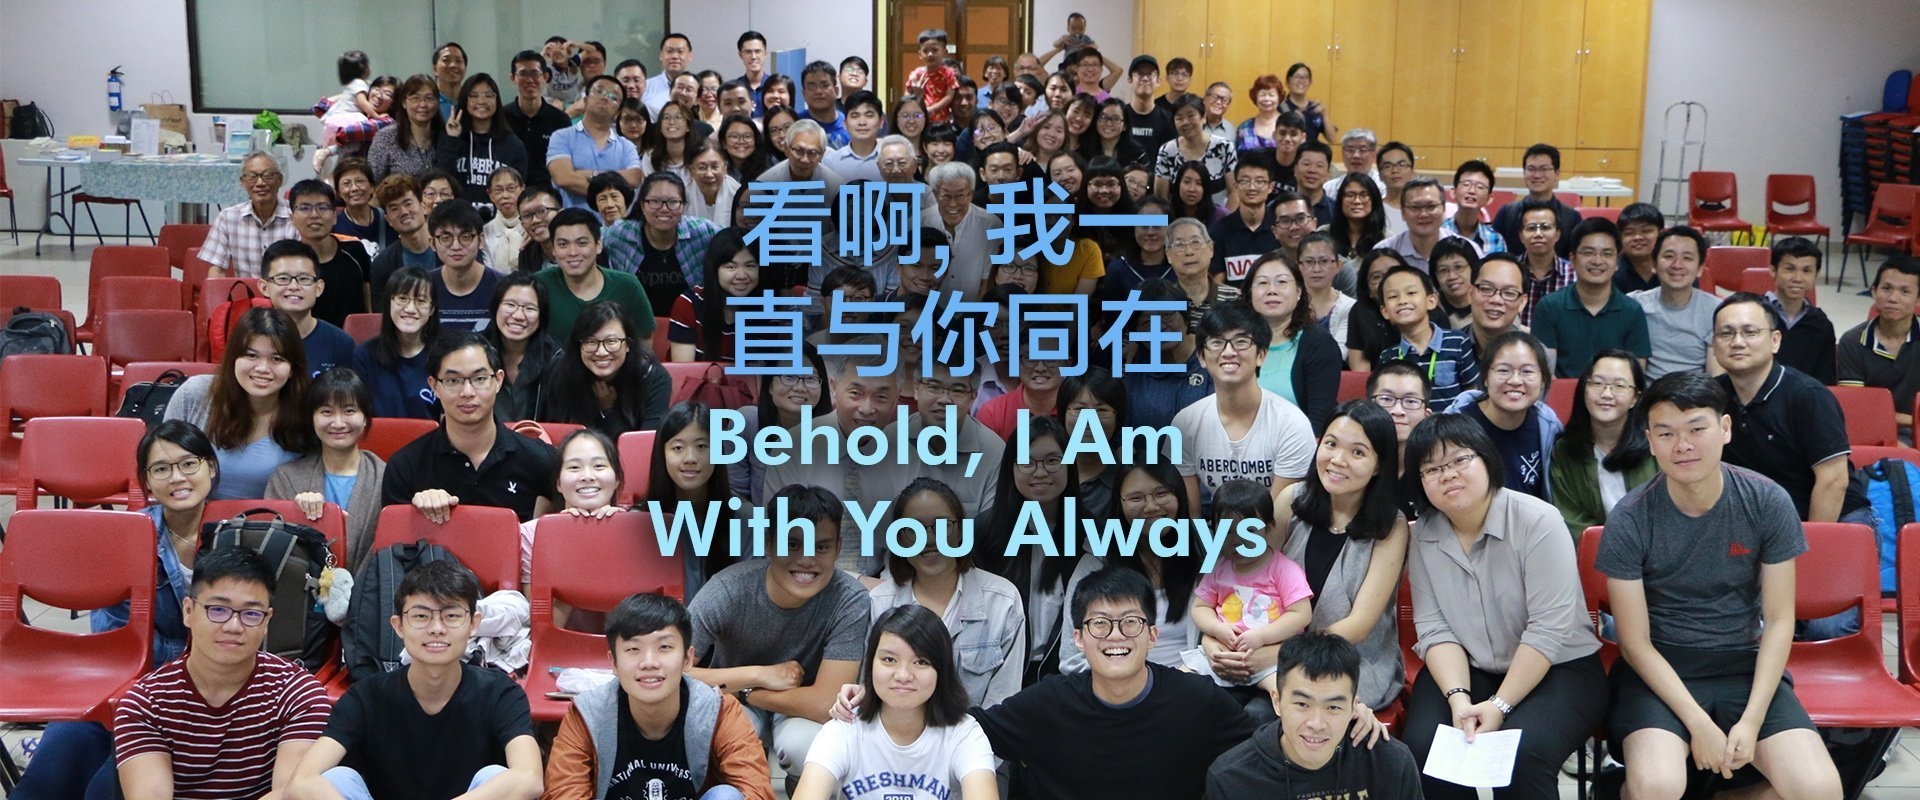 Behold I am with You